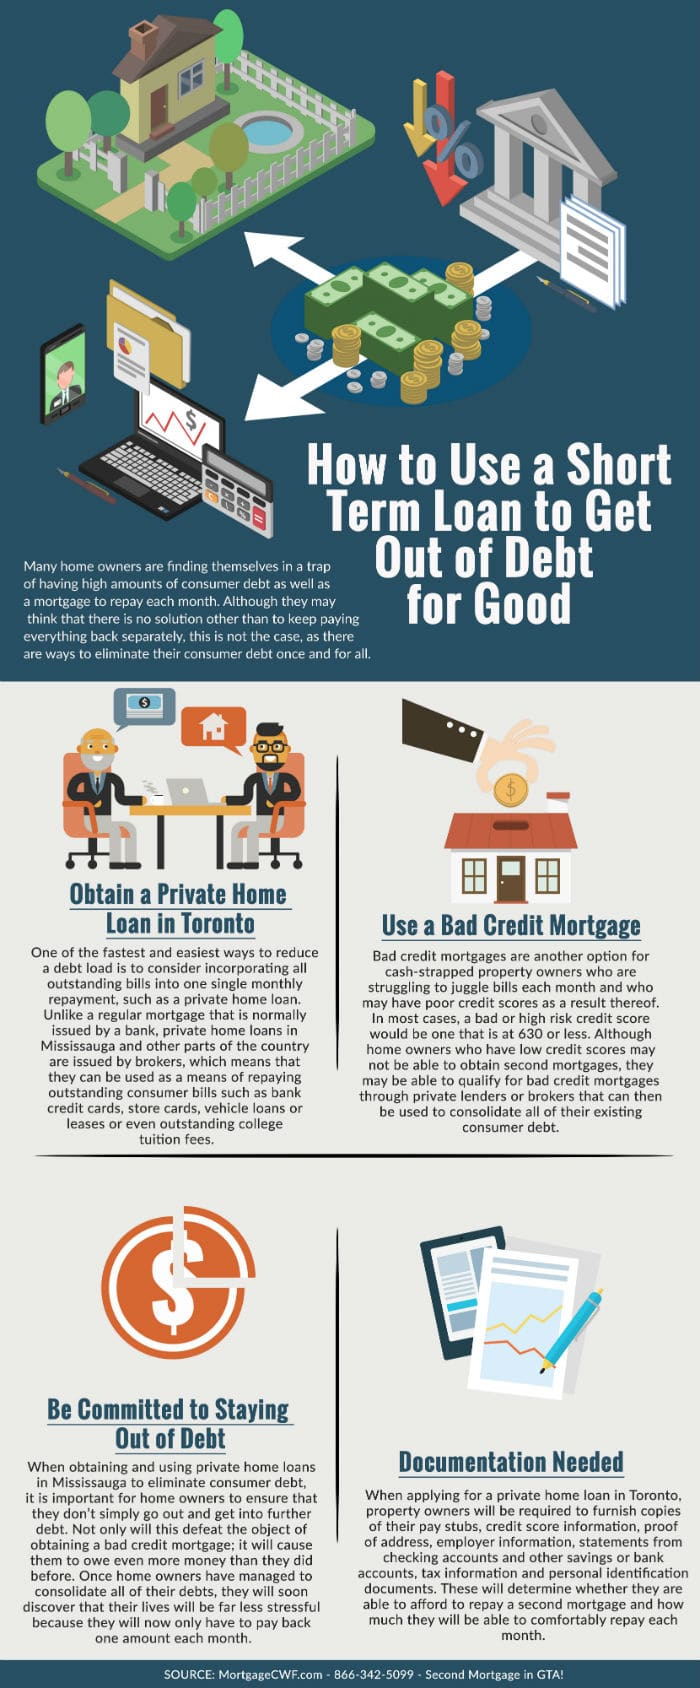 How to Use a Short Term Loan to Get Out of Debt for Good